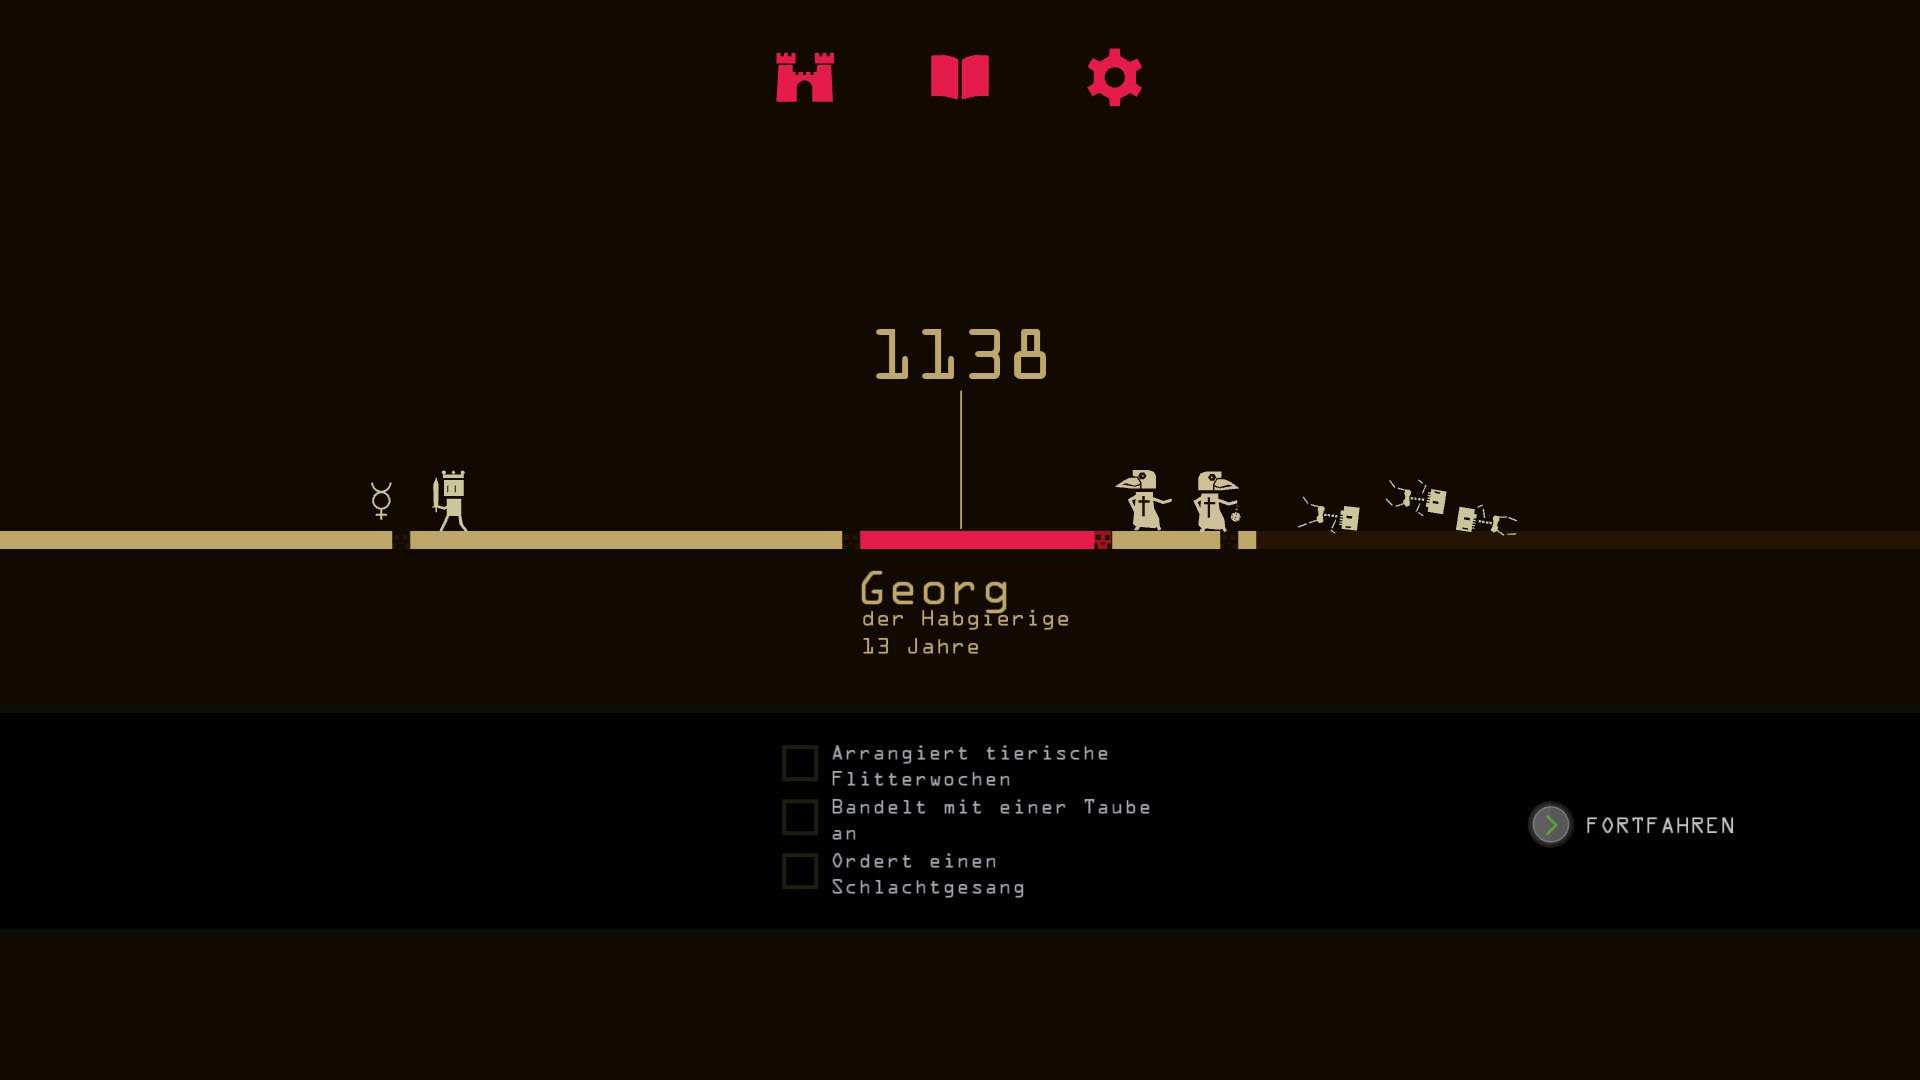 reigns_screenshot1